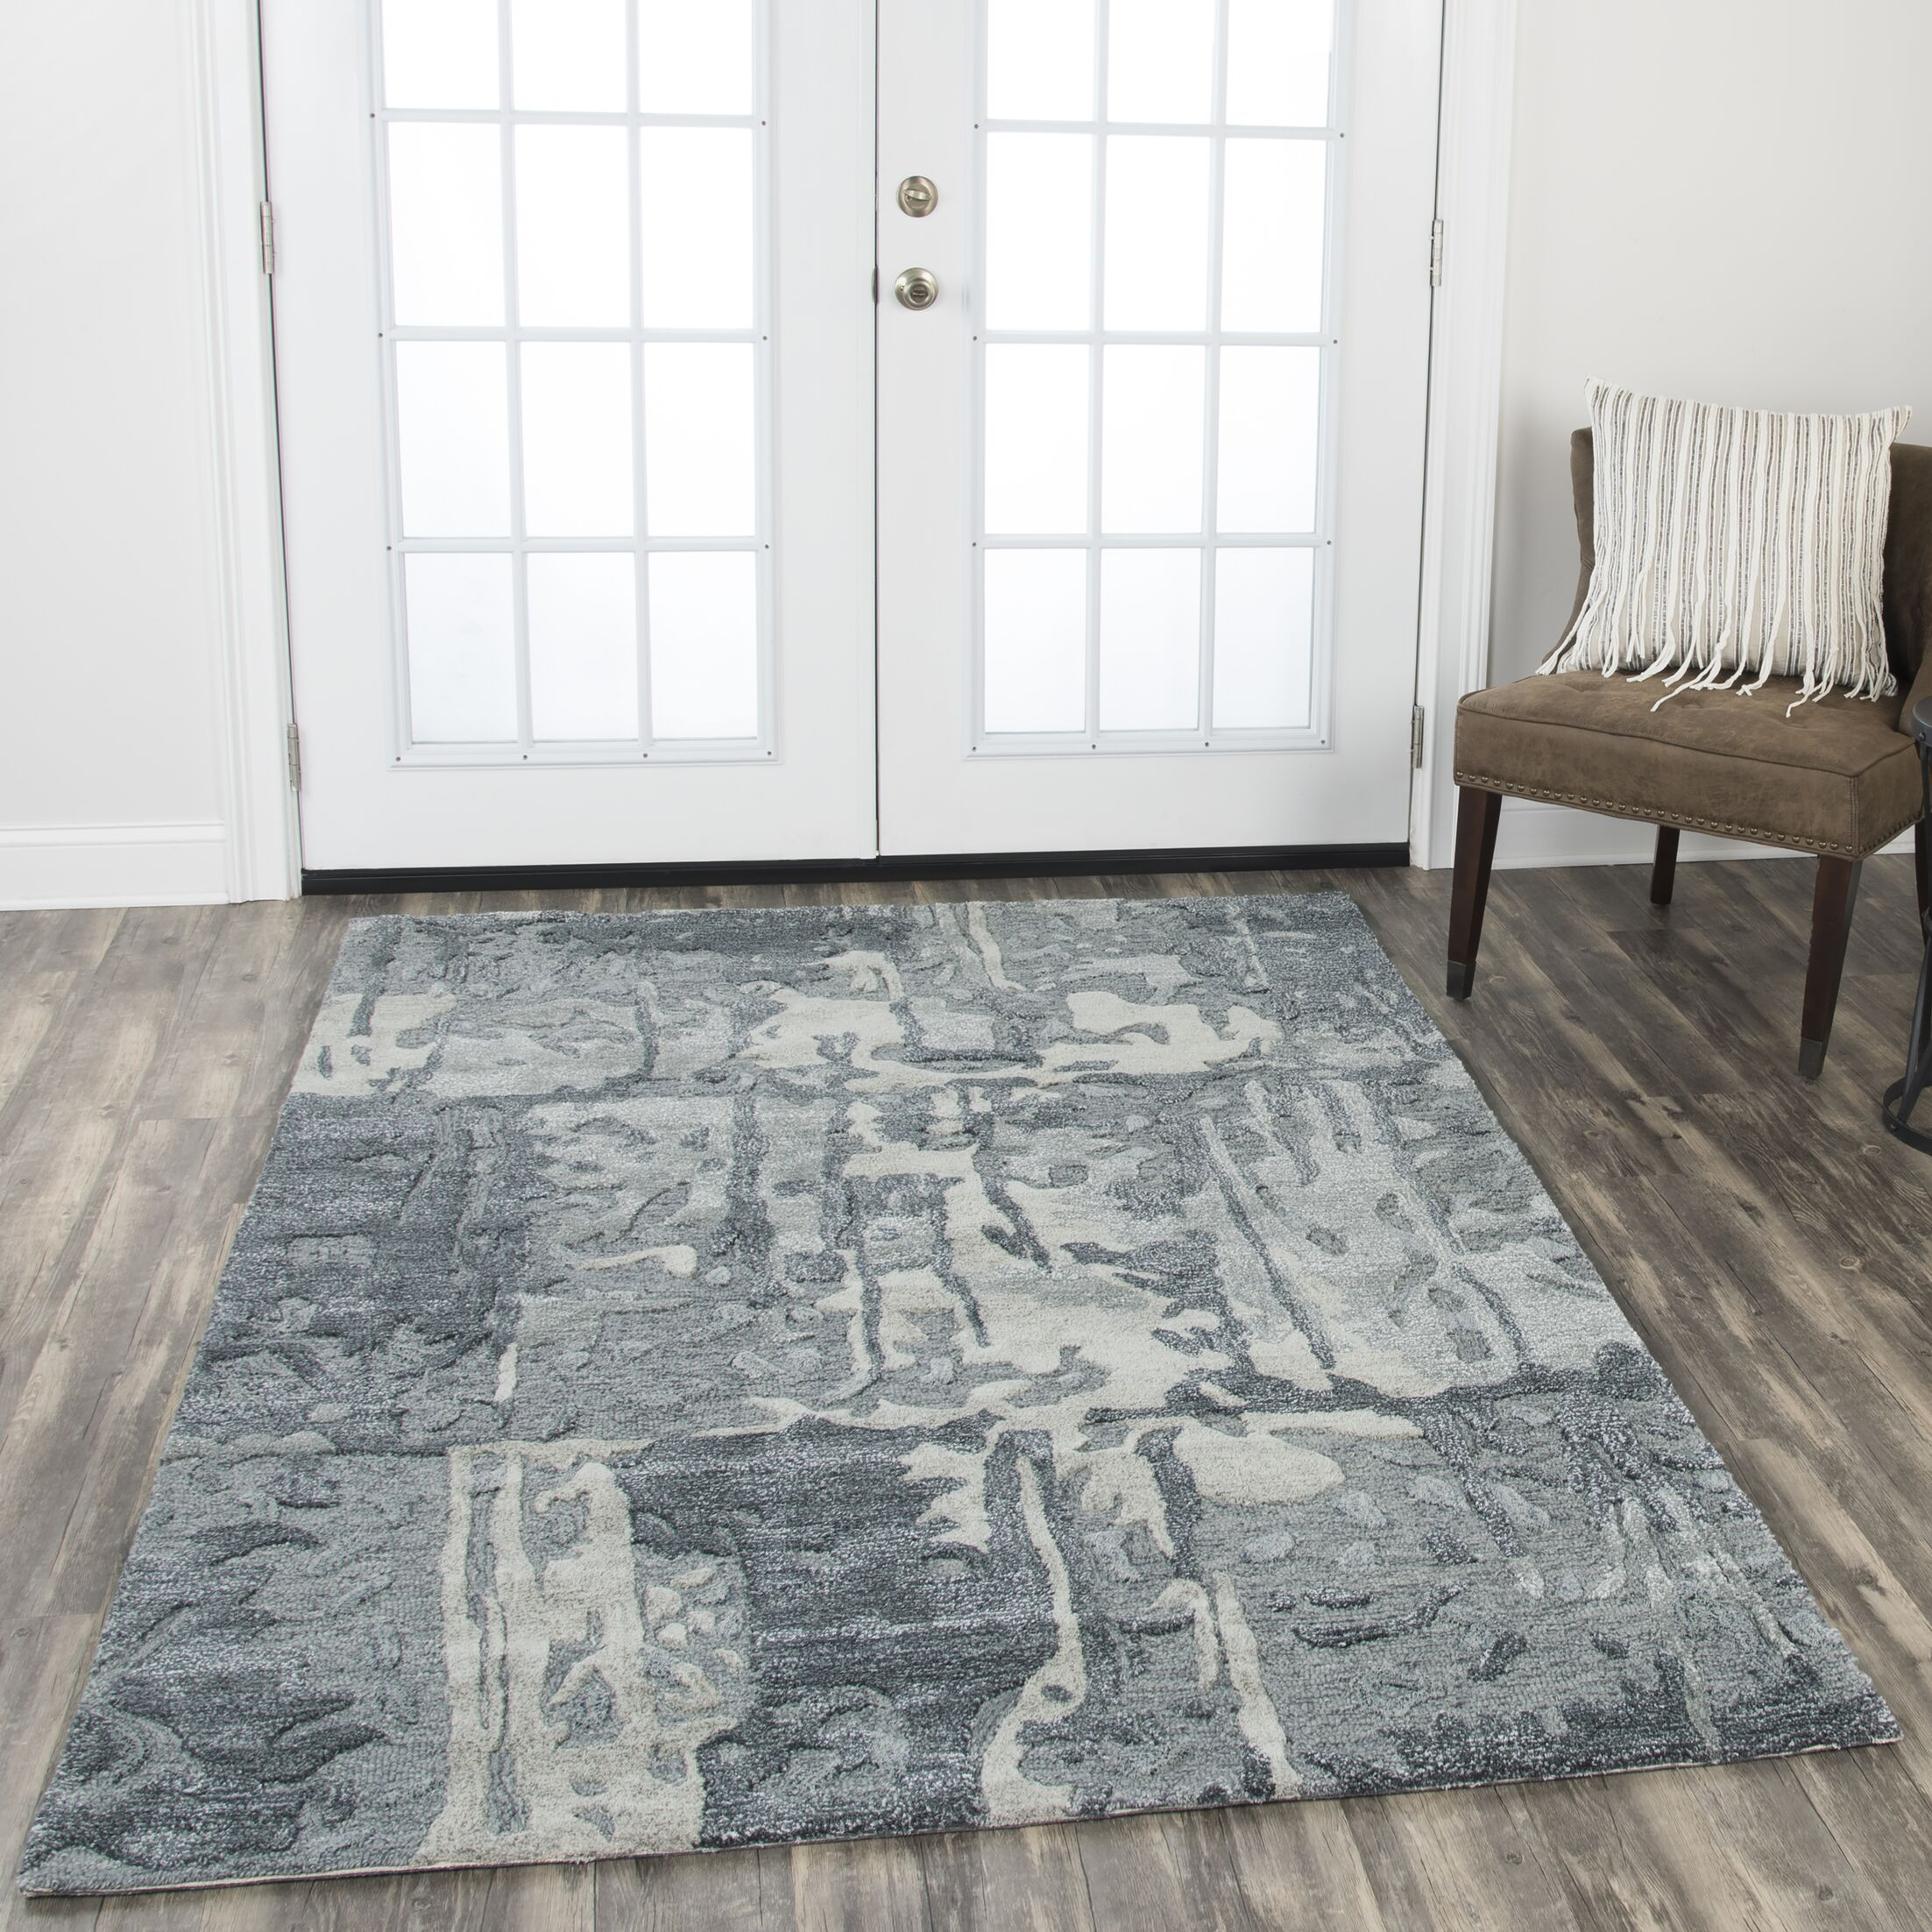 Gomes Hand-Tufted Wool Gray Area Rug Rug Size: Rectangle 2'6